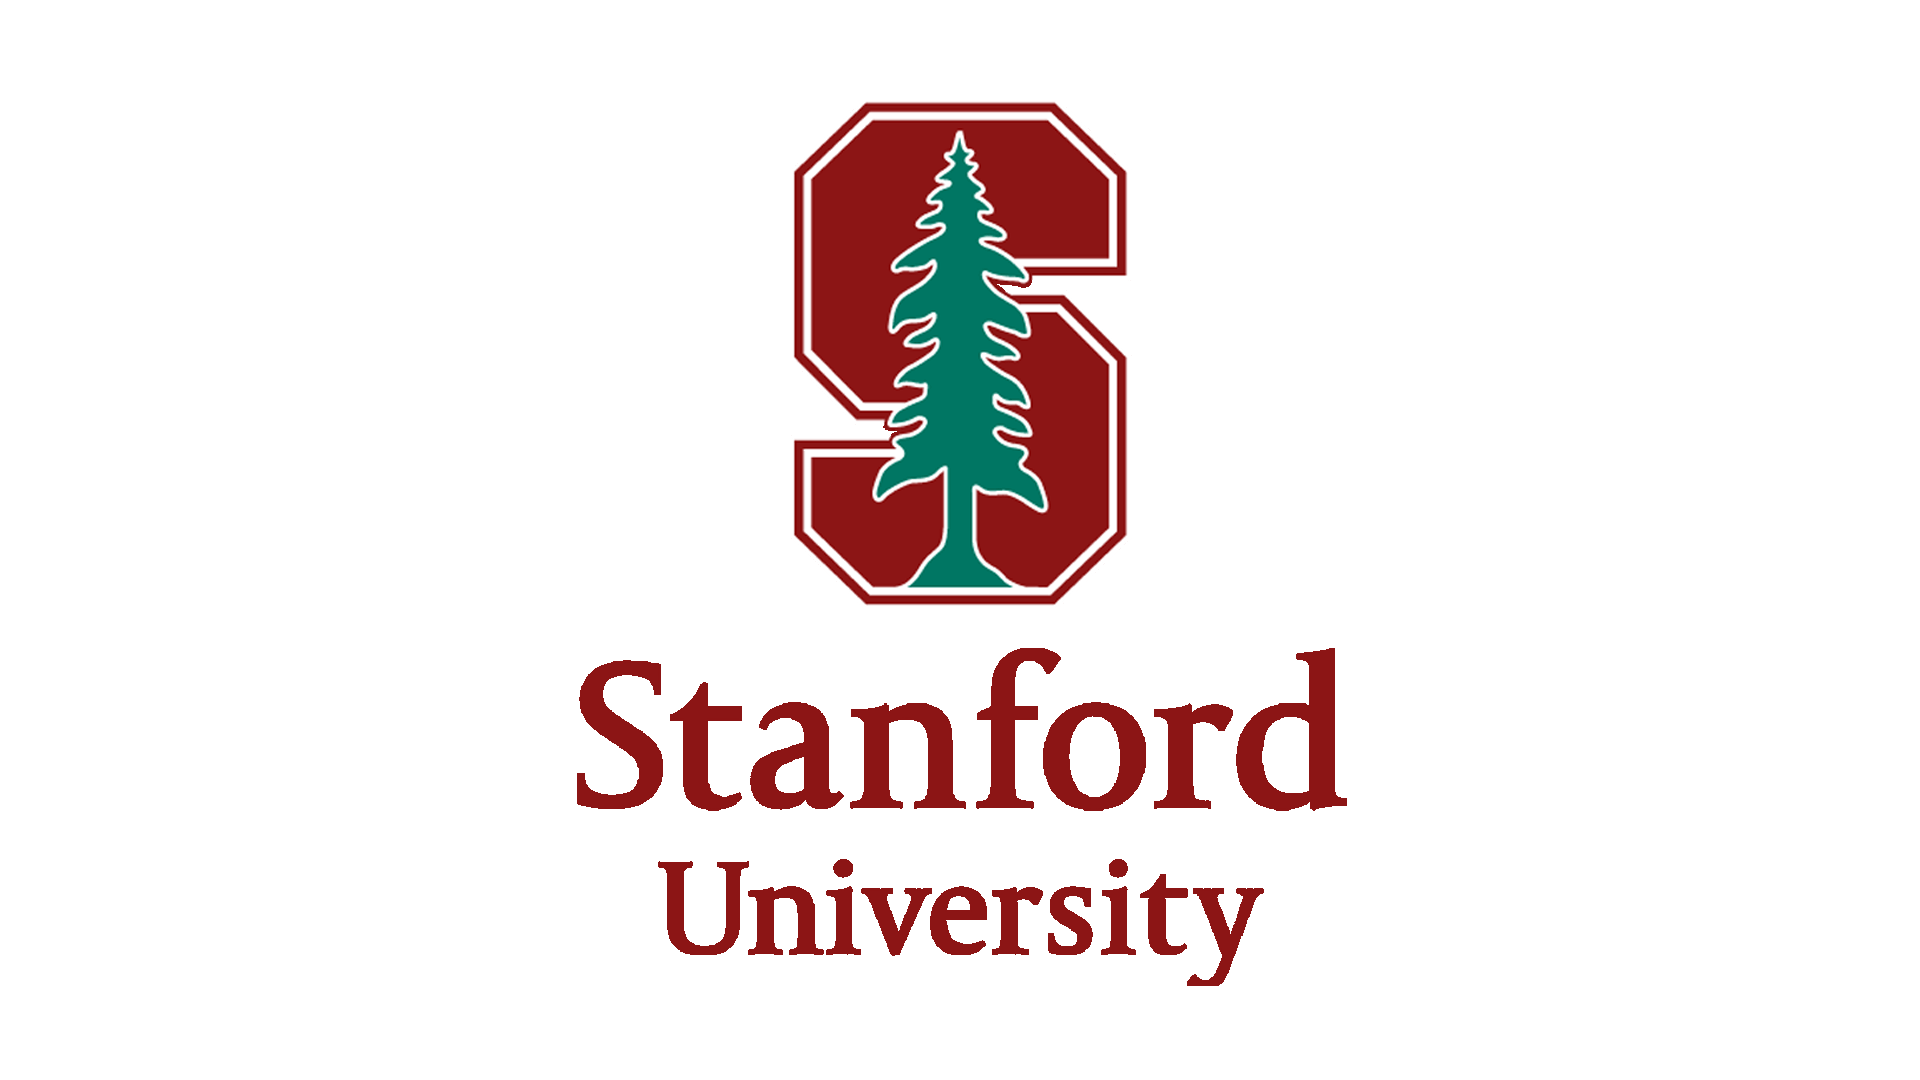 Standford University Logo - Stanford Logo, Stanford Symbol, Meaning, History and Evolution